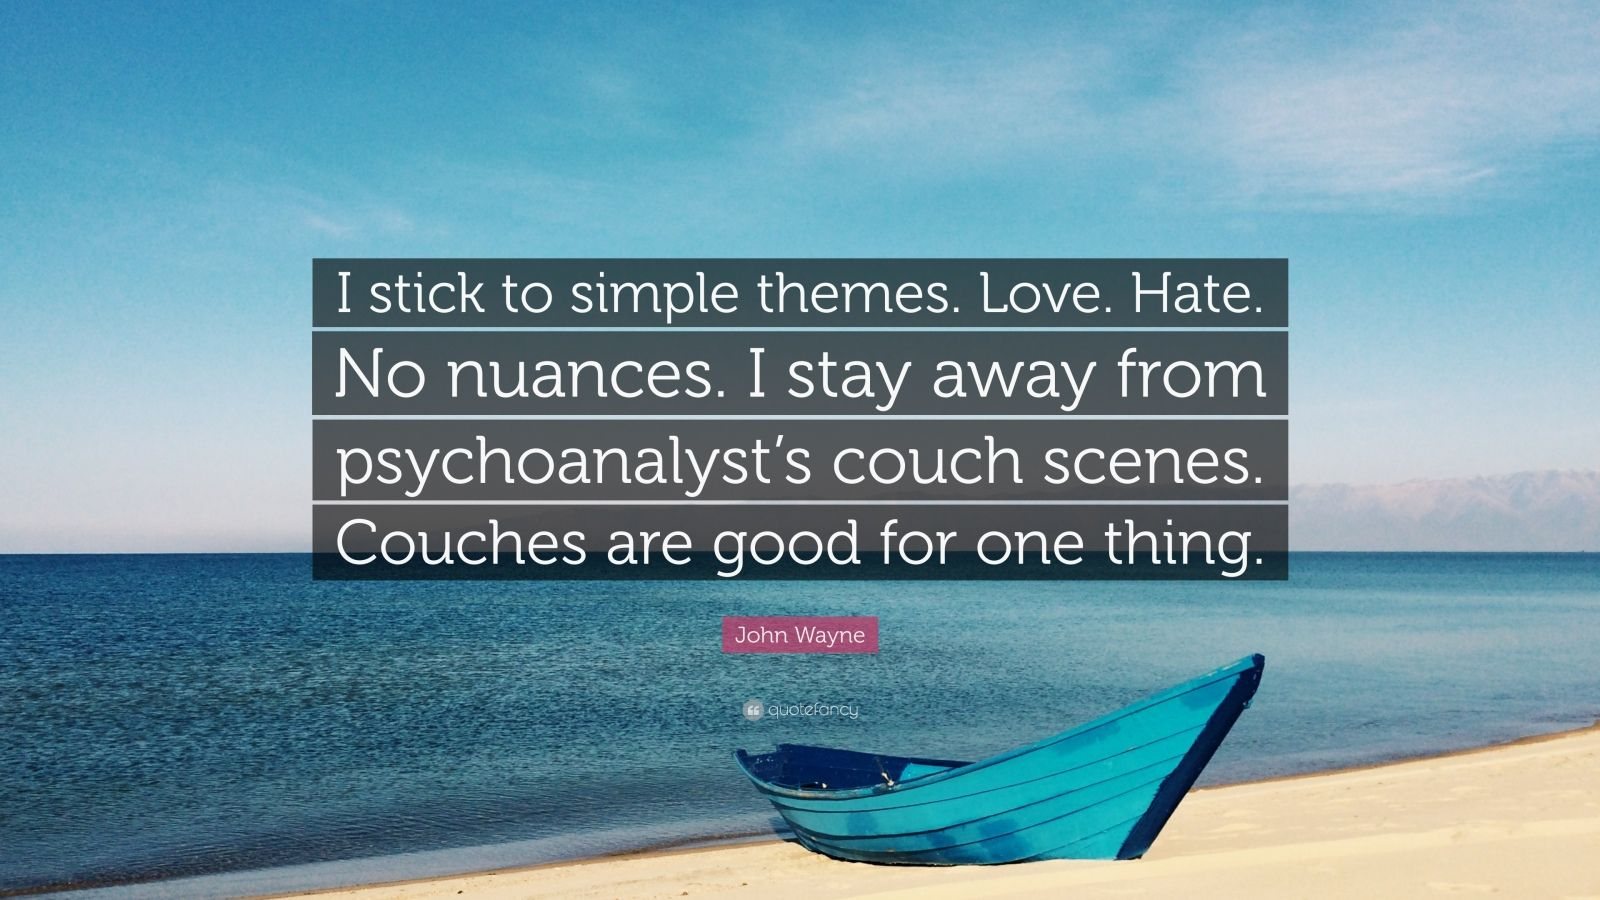 """John Wayne Quote: """"I stick to simple themes. Love. Hate. No nuances. I stay away from psychoanalyst's couch scenes. Couches are good for one thing."""""""